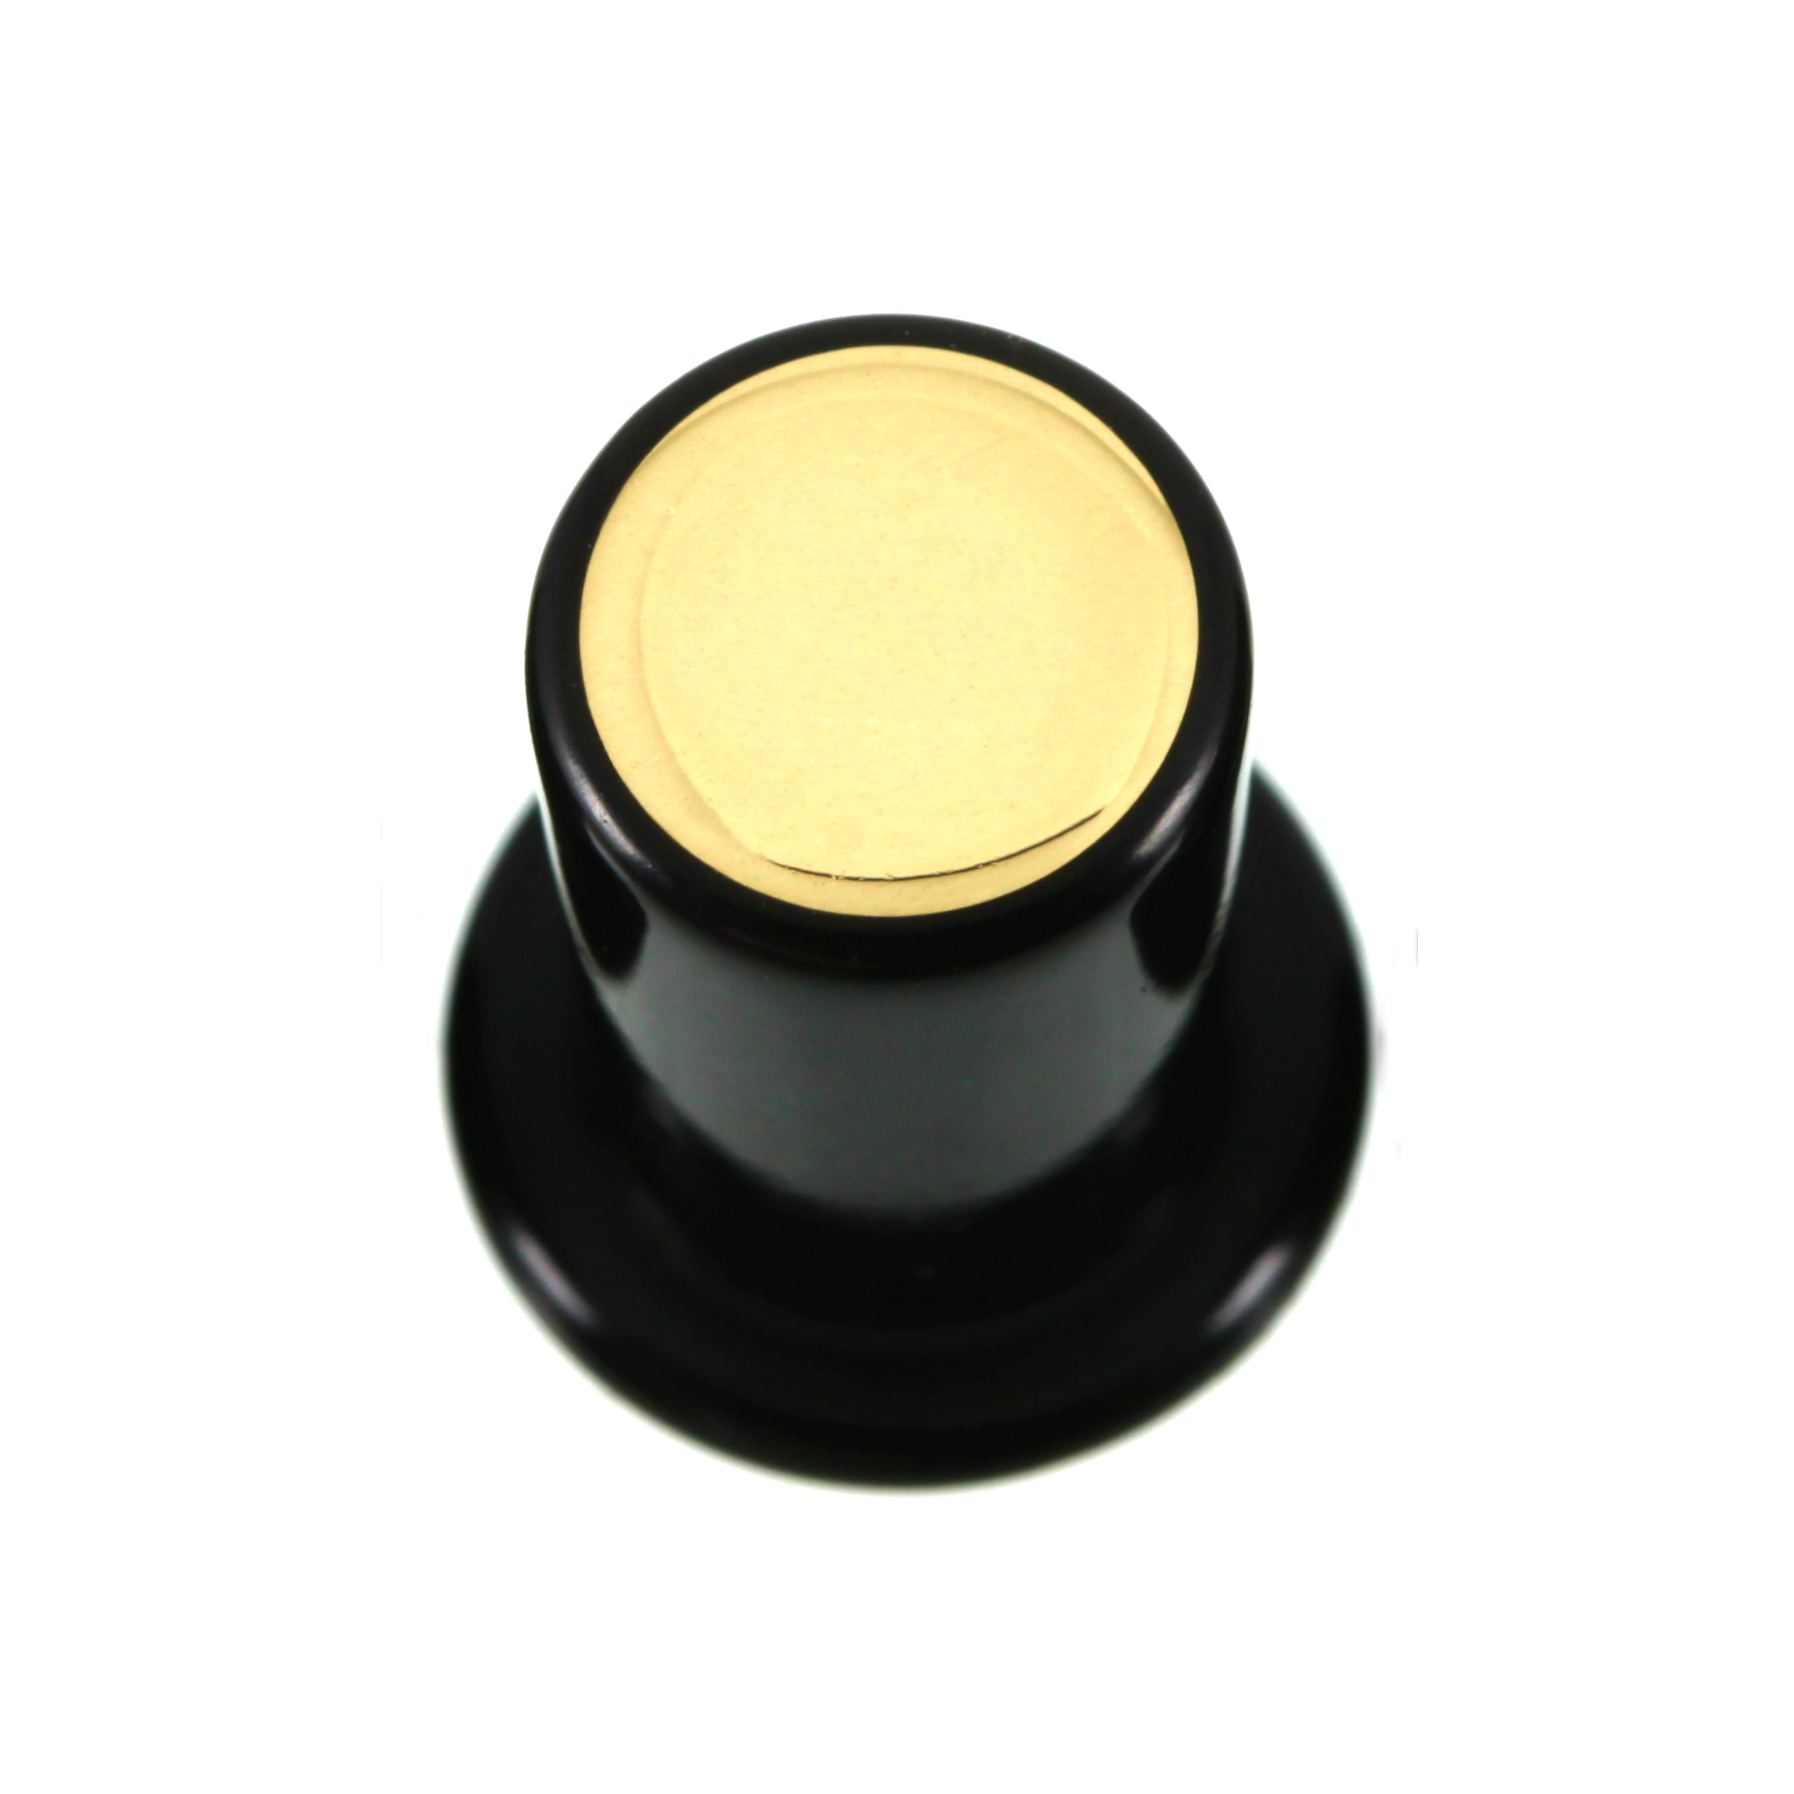 Delrin Philtrum Plug - Flush Brass Inlay